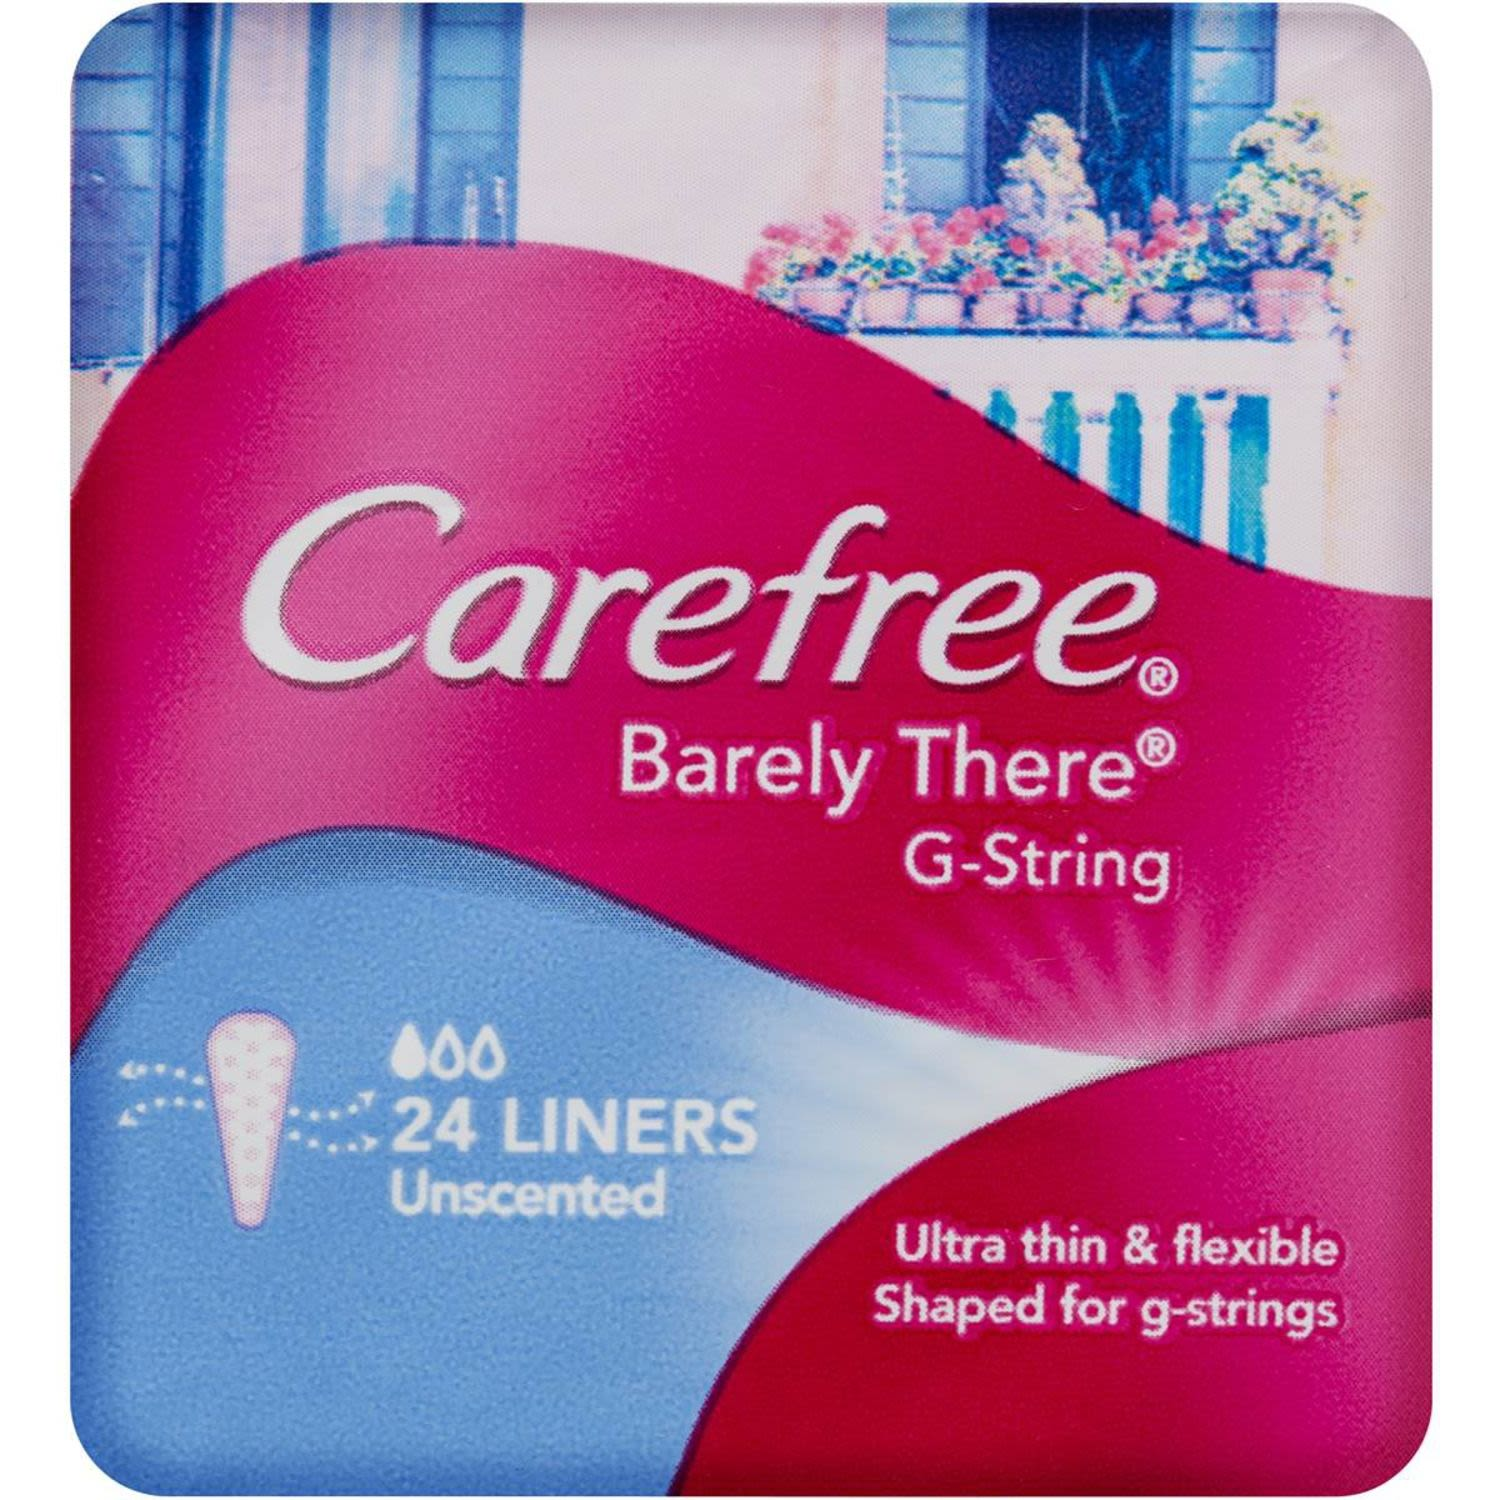 Carefree Panty Liners Barely There G String, 24 Each